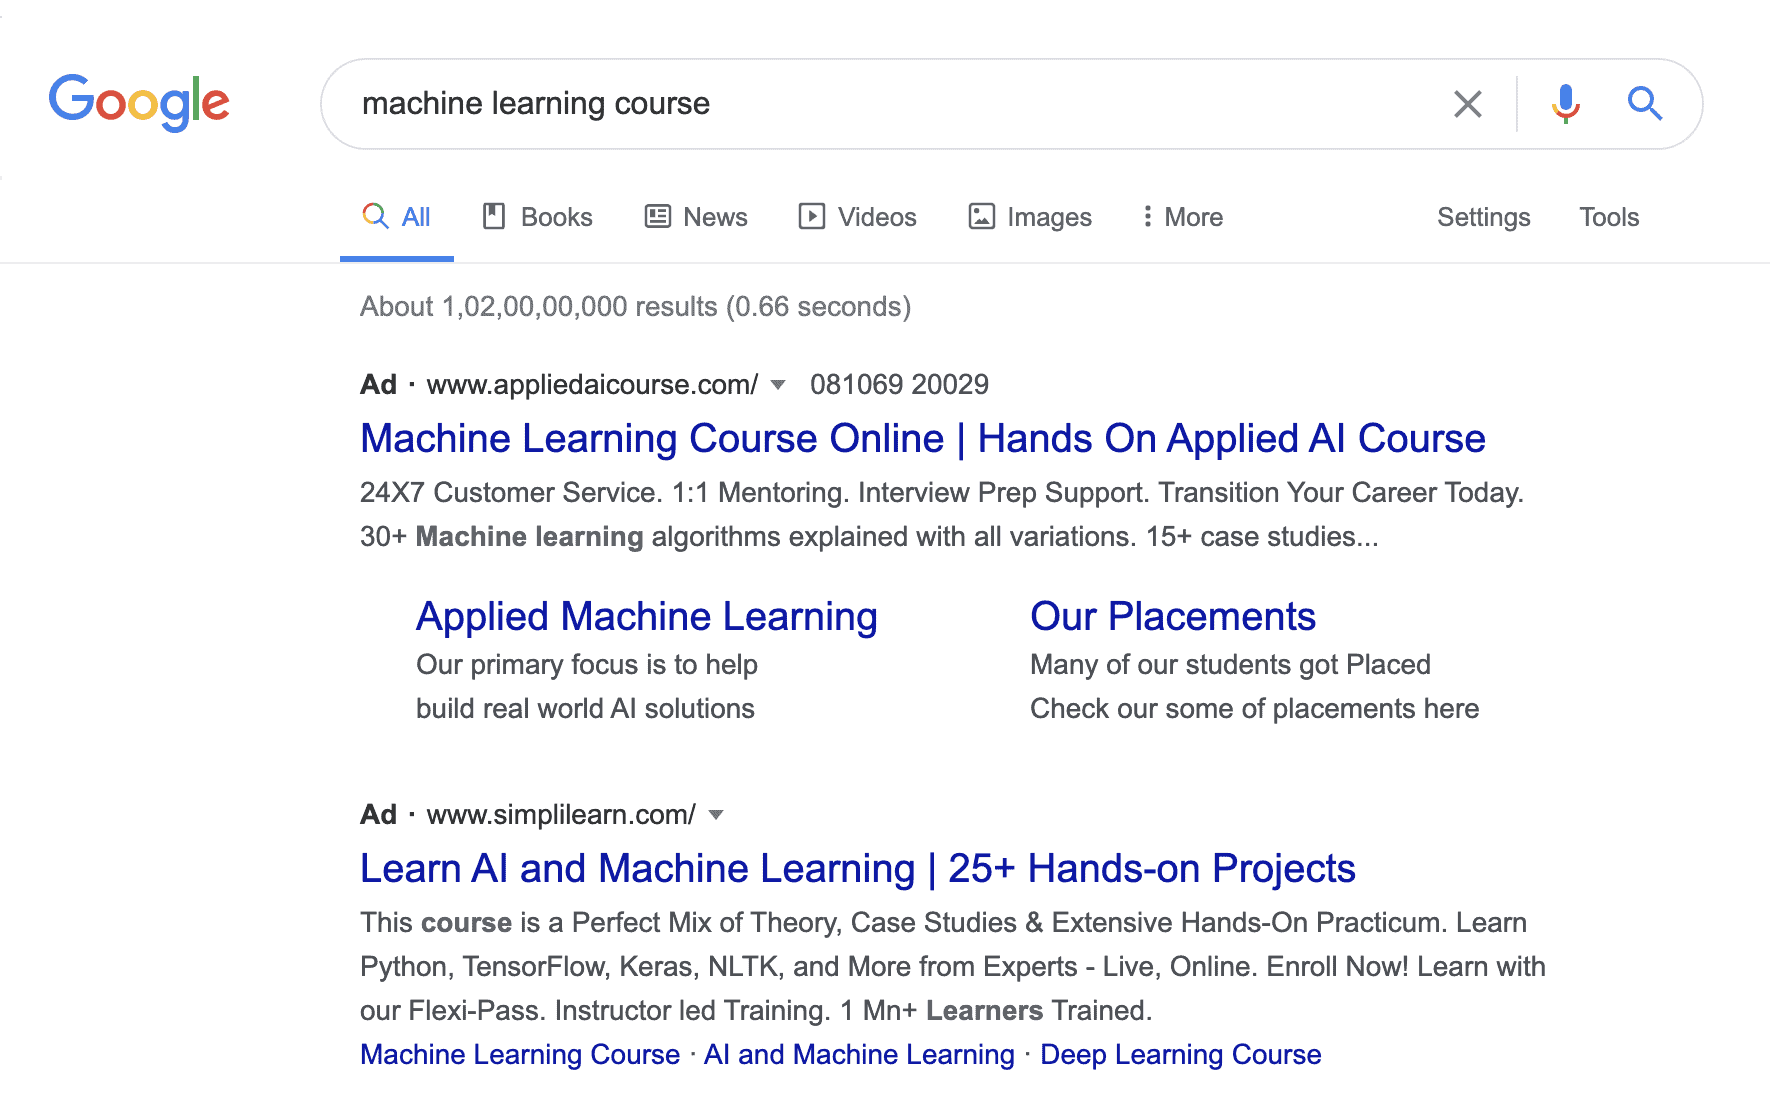 Google Search Ads for Machine Learning Courses